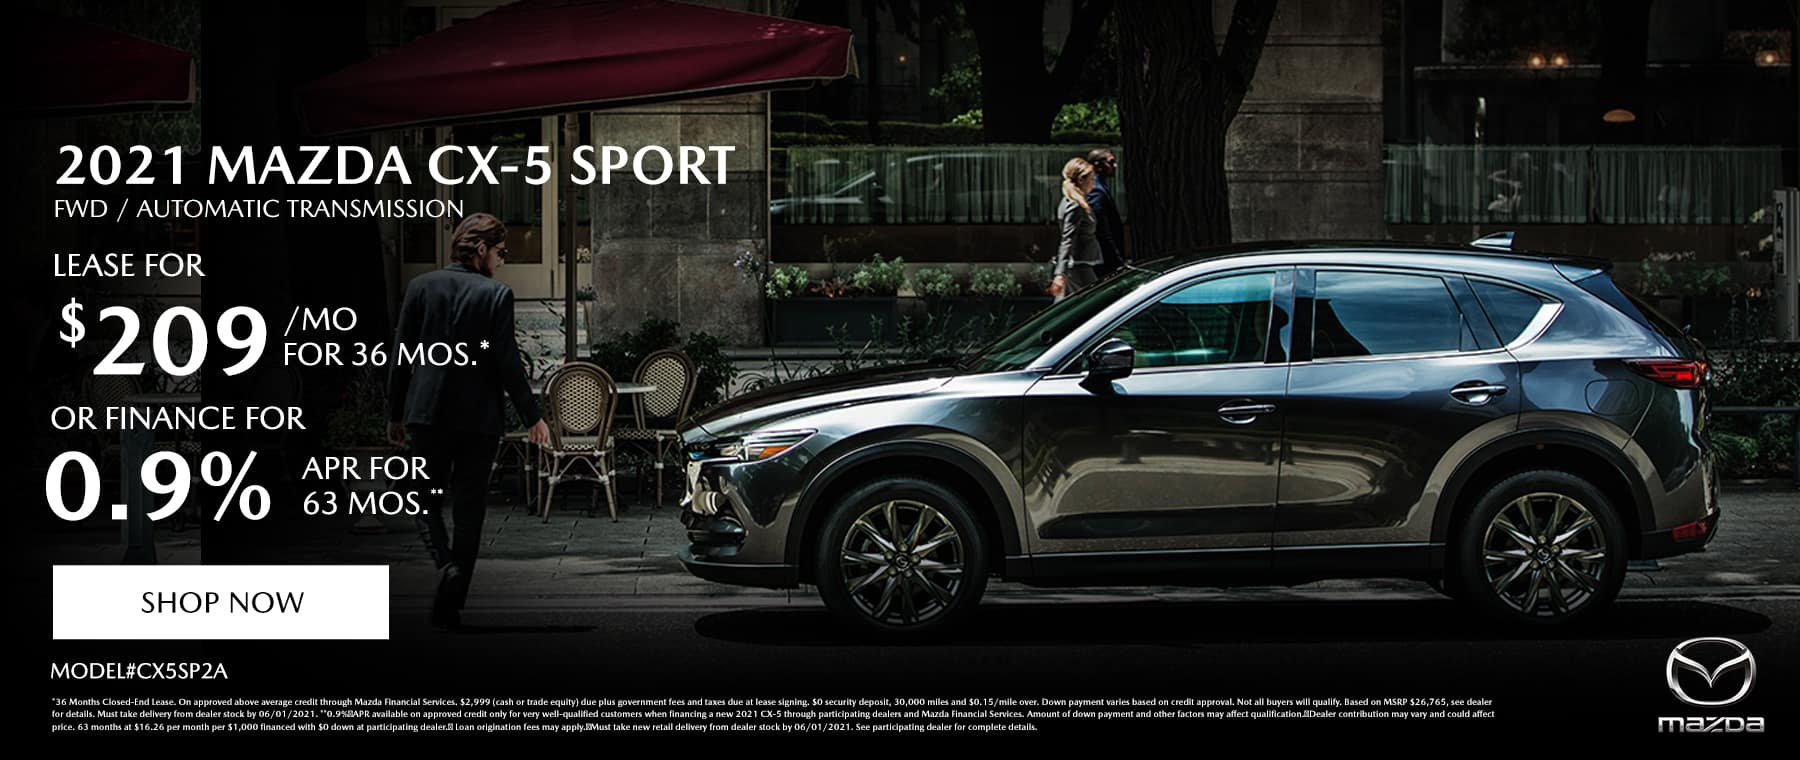 2021 MAZDA CX-5 SPORT FWD AUTOMATIC (MODEL#CX5SP2A) Lease Specials: $209/month @ 36 months* OR Special Finance: 0.9% APR for up to 63 Months**